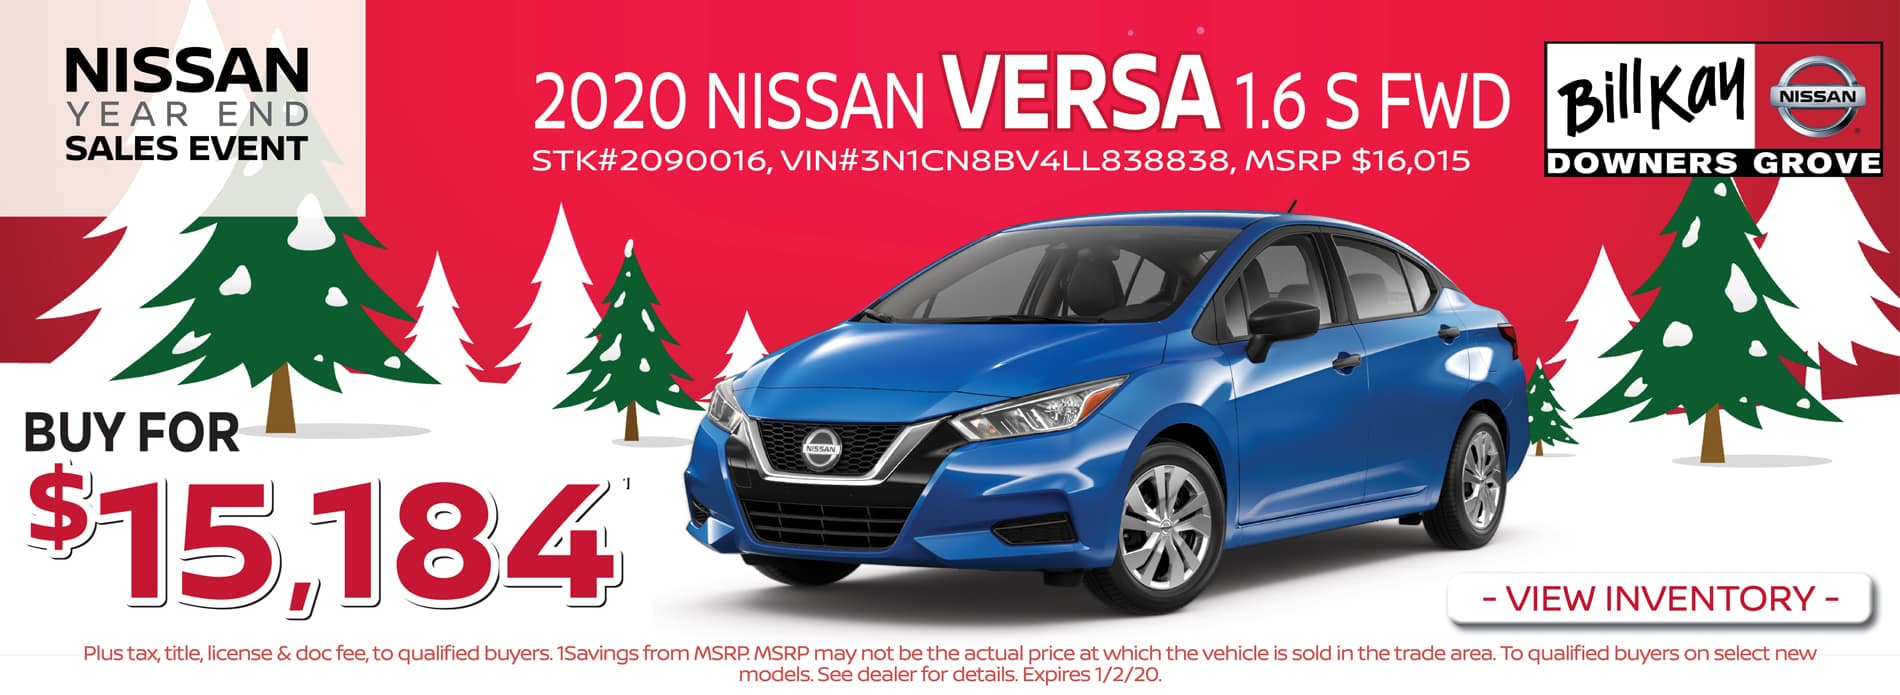 Buy a 2020 Nissan Versa S for $15,184